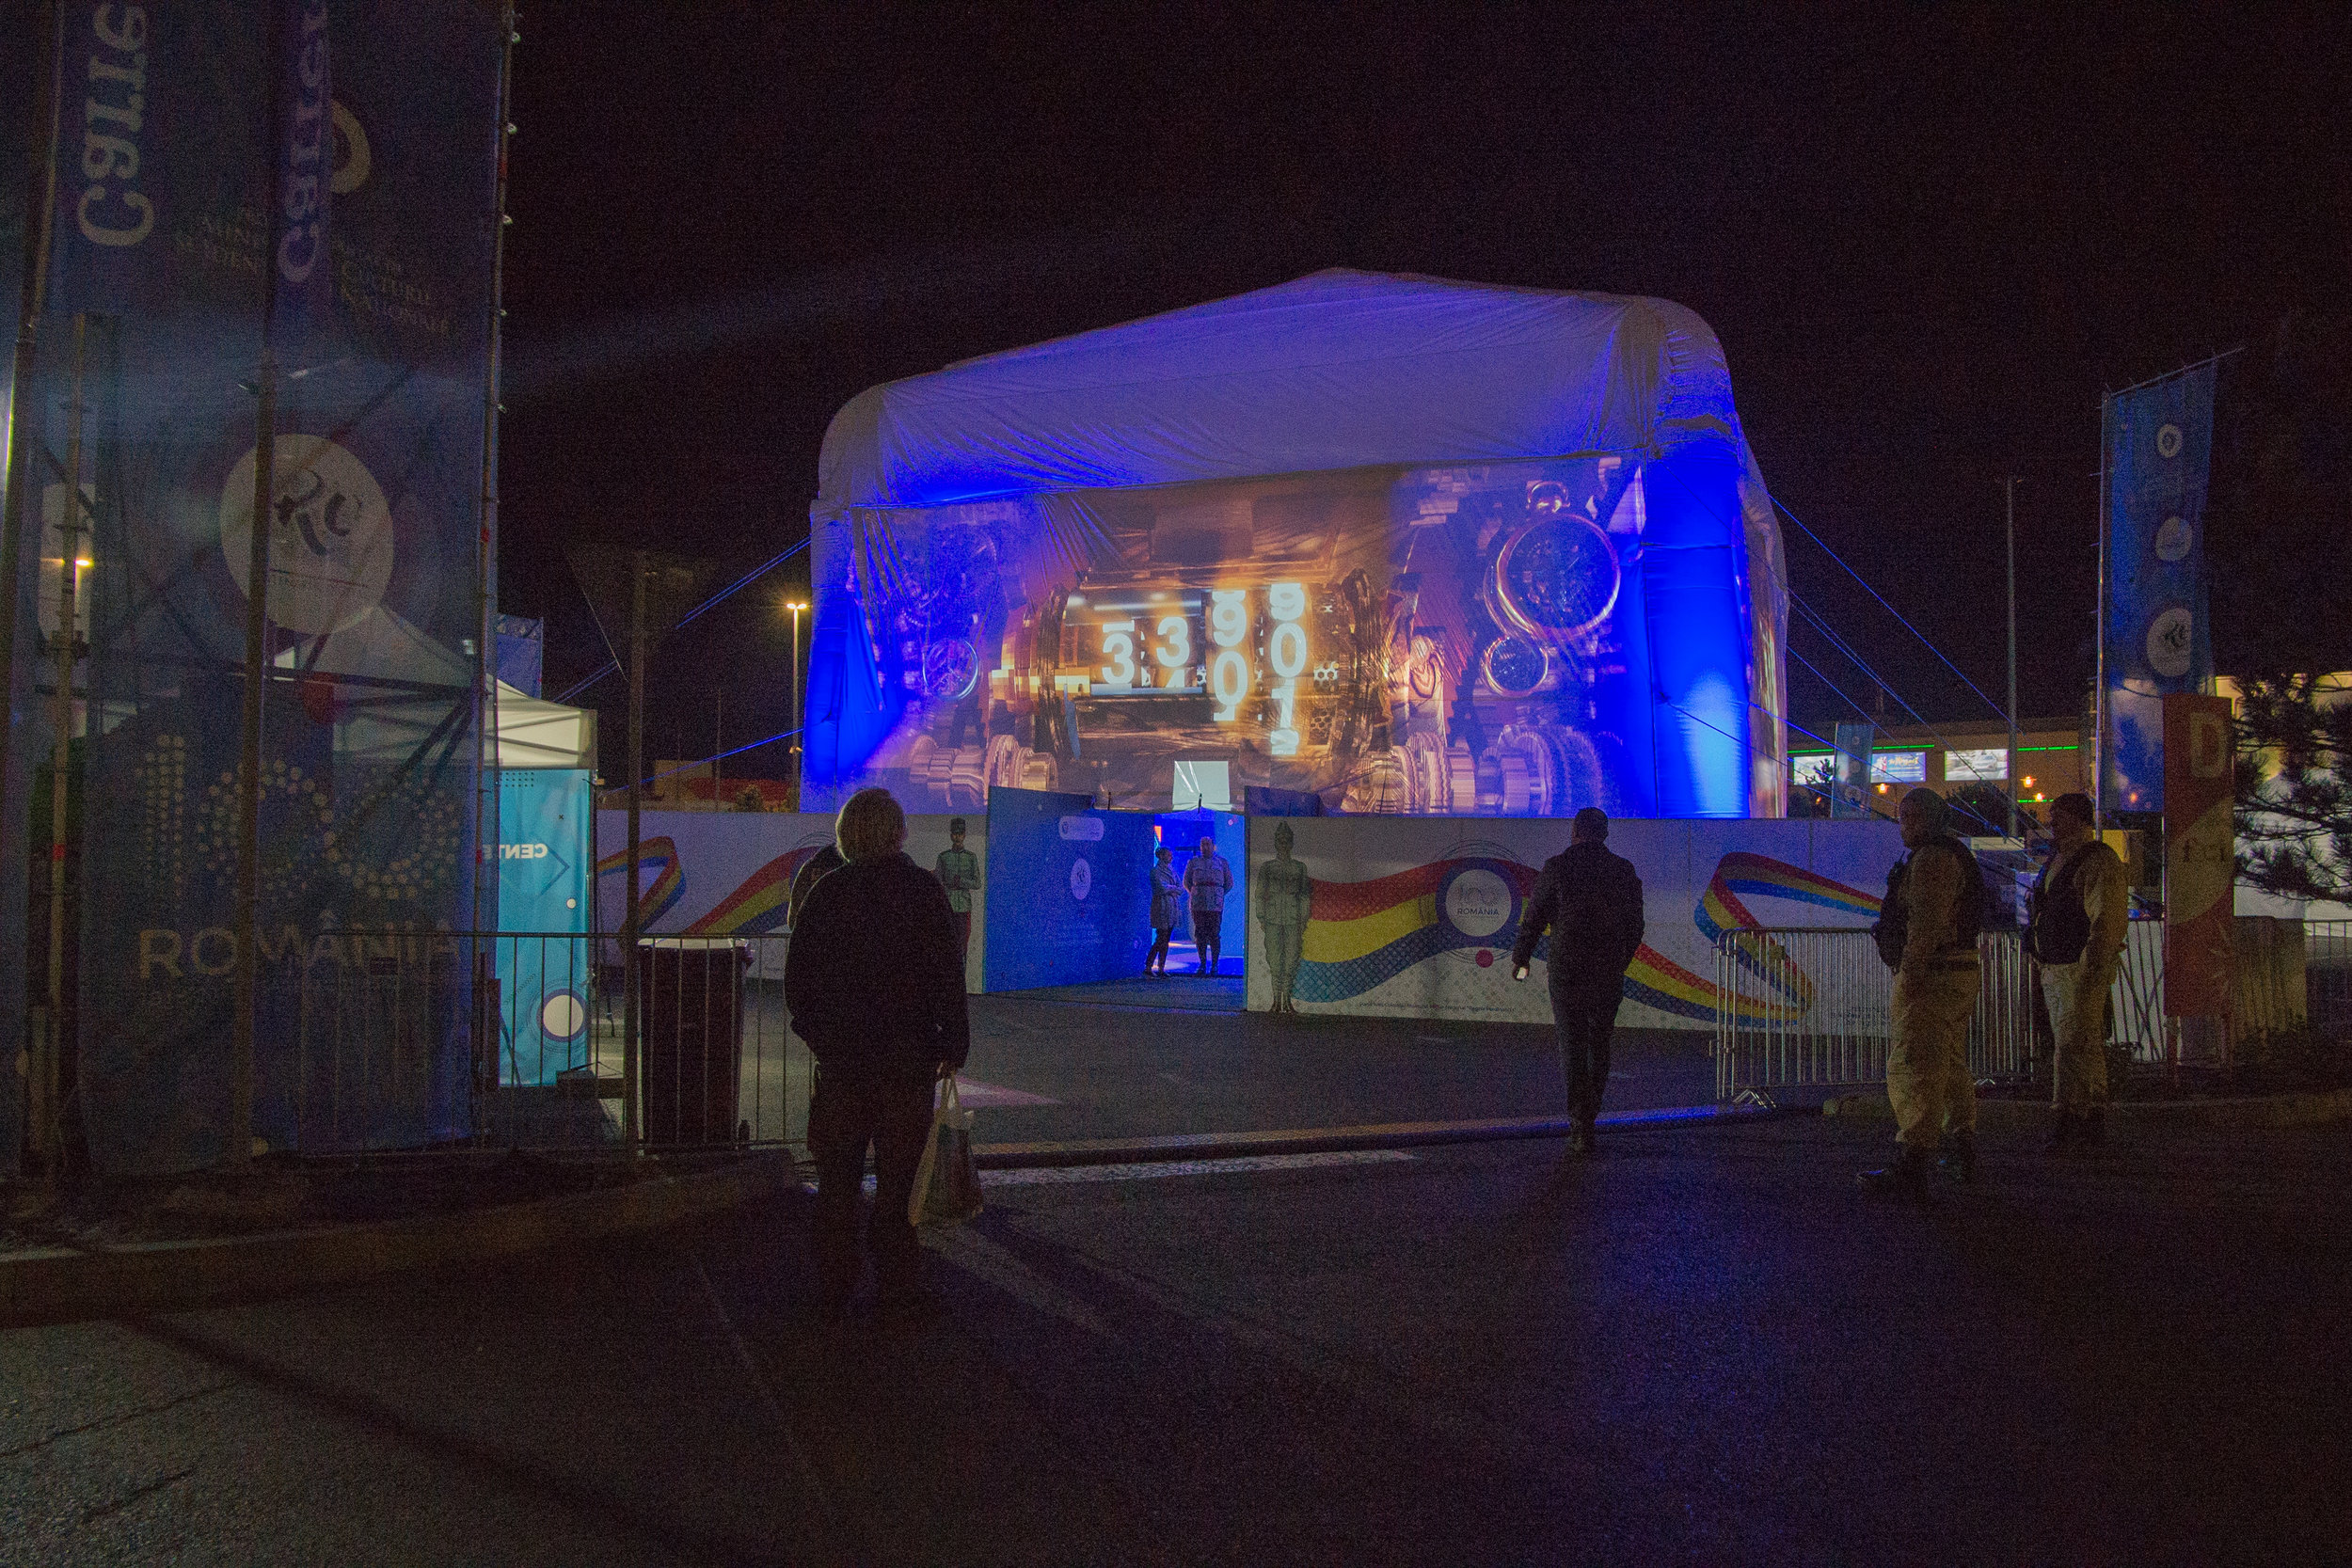 Giant-Inflatable-Projection-Cube.jpg